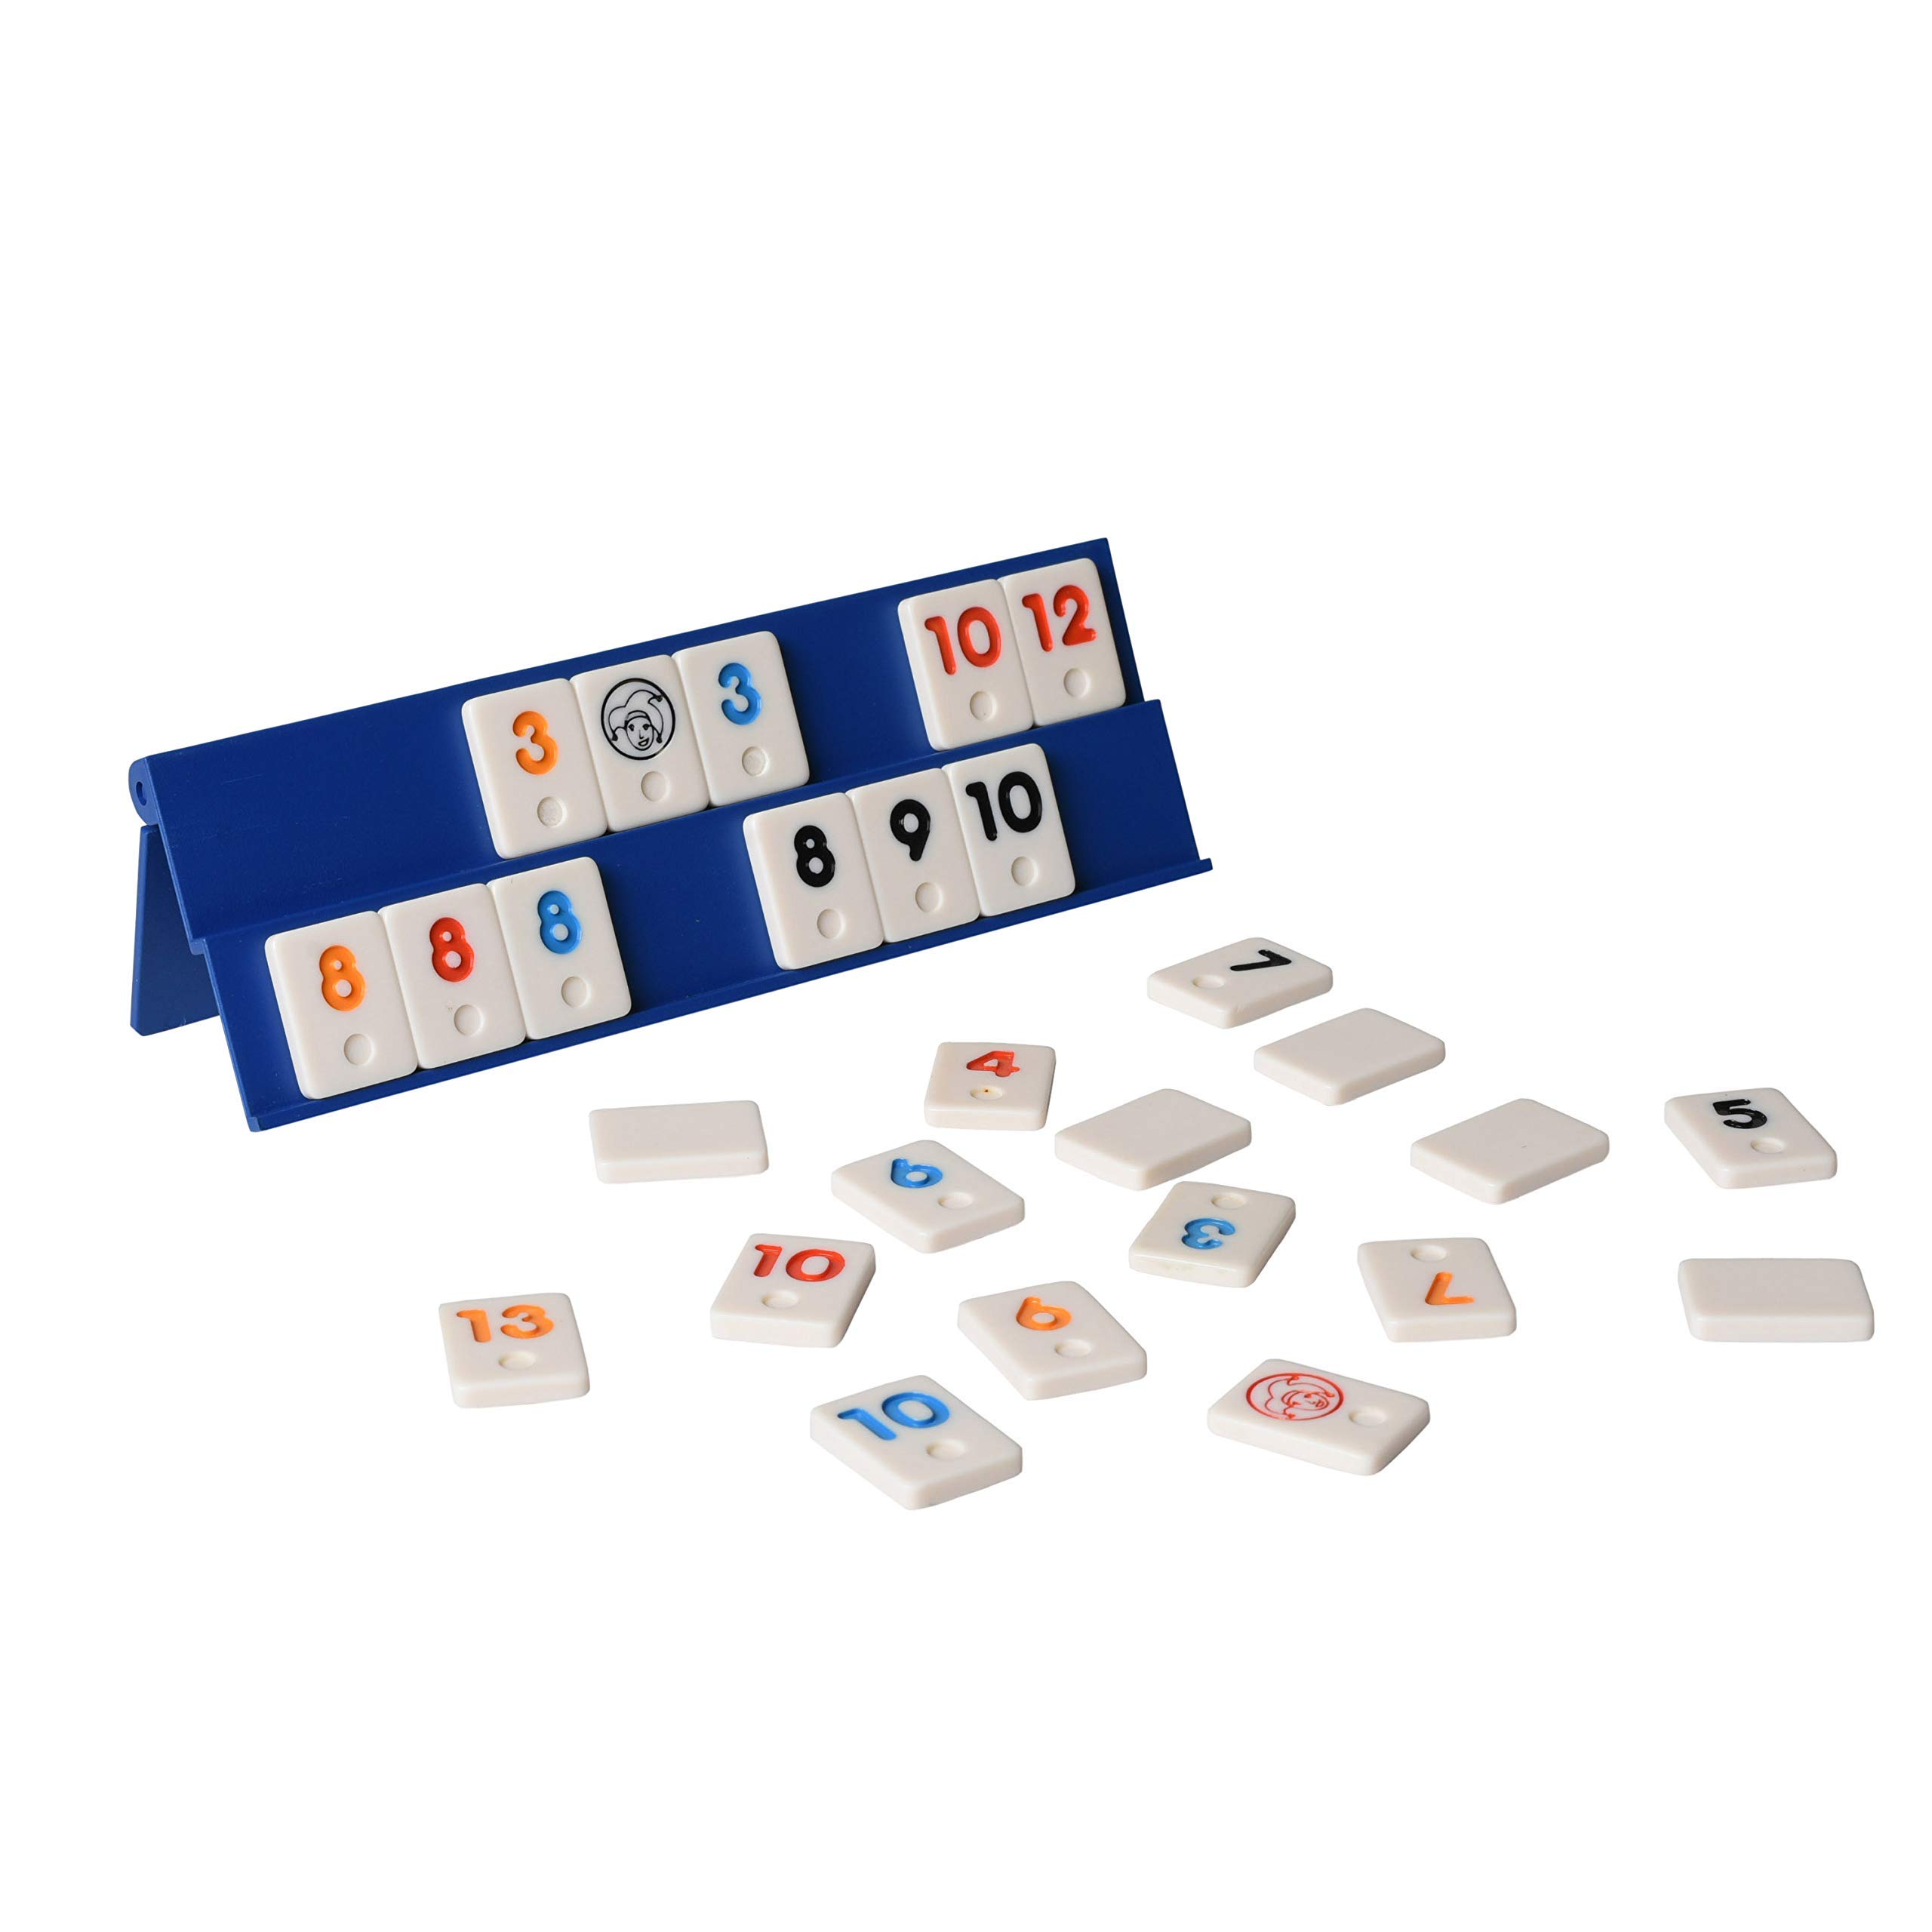 Point Games Mini Travel Rummy con 106 fichas y cuatro racks de juego exclusivos de 2 niveles en una bolsa de viaje súper duradera, color blue & white (2042) , color/modelo surtido: